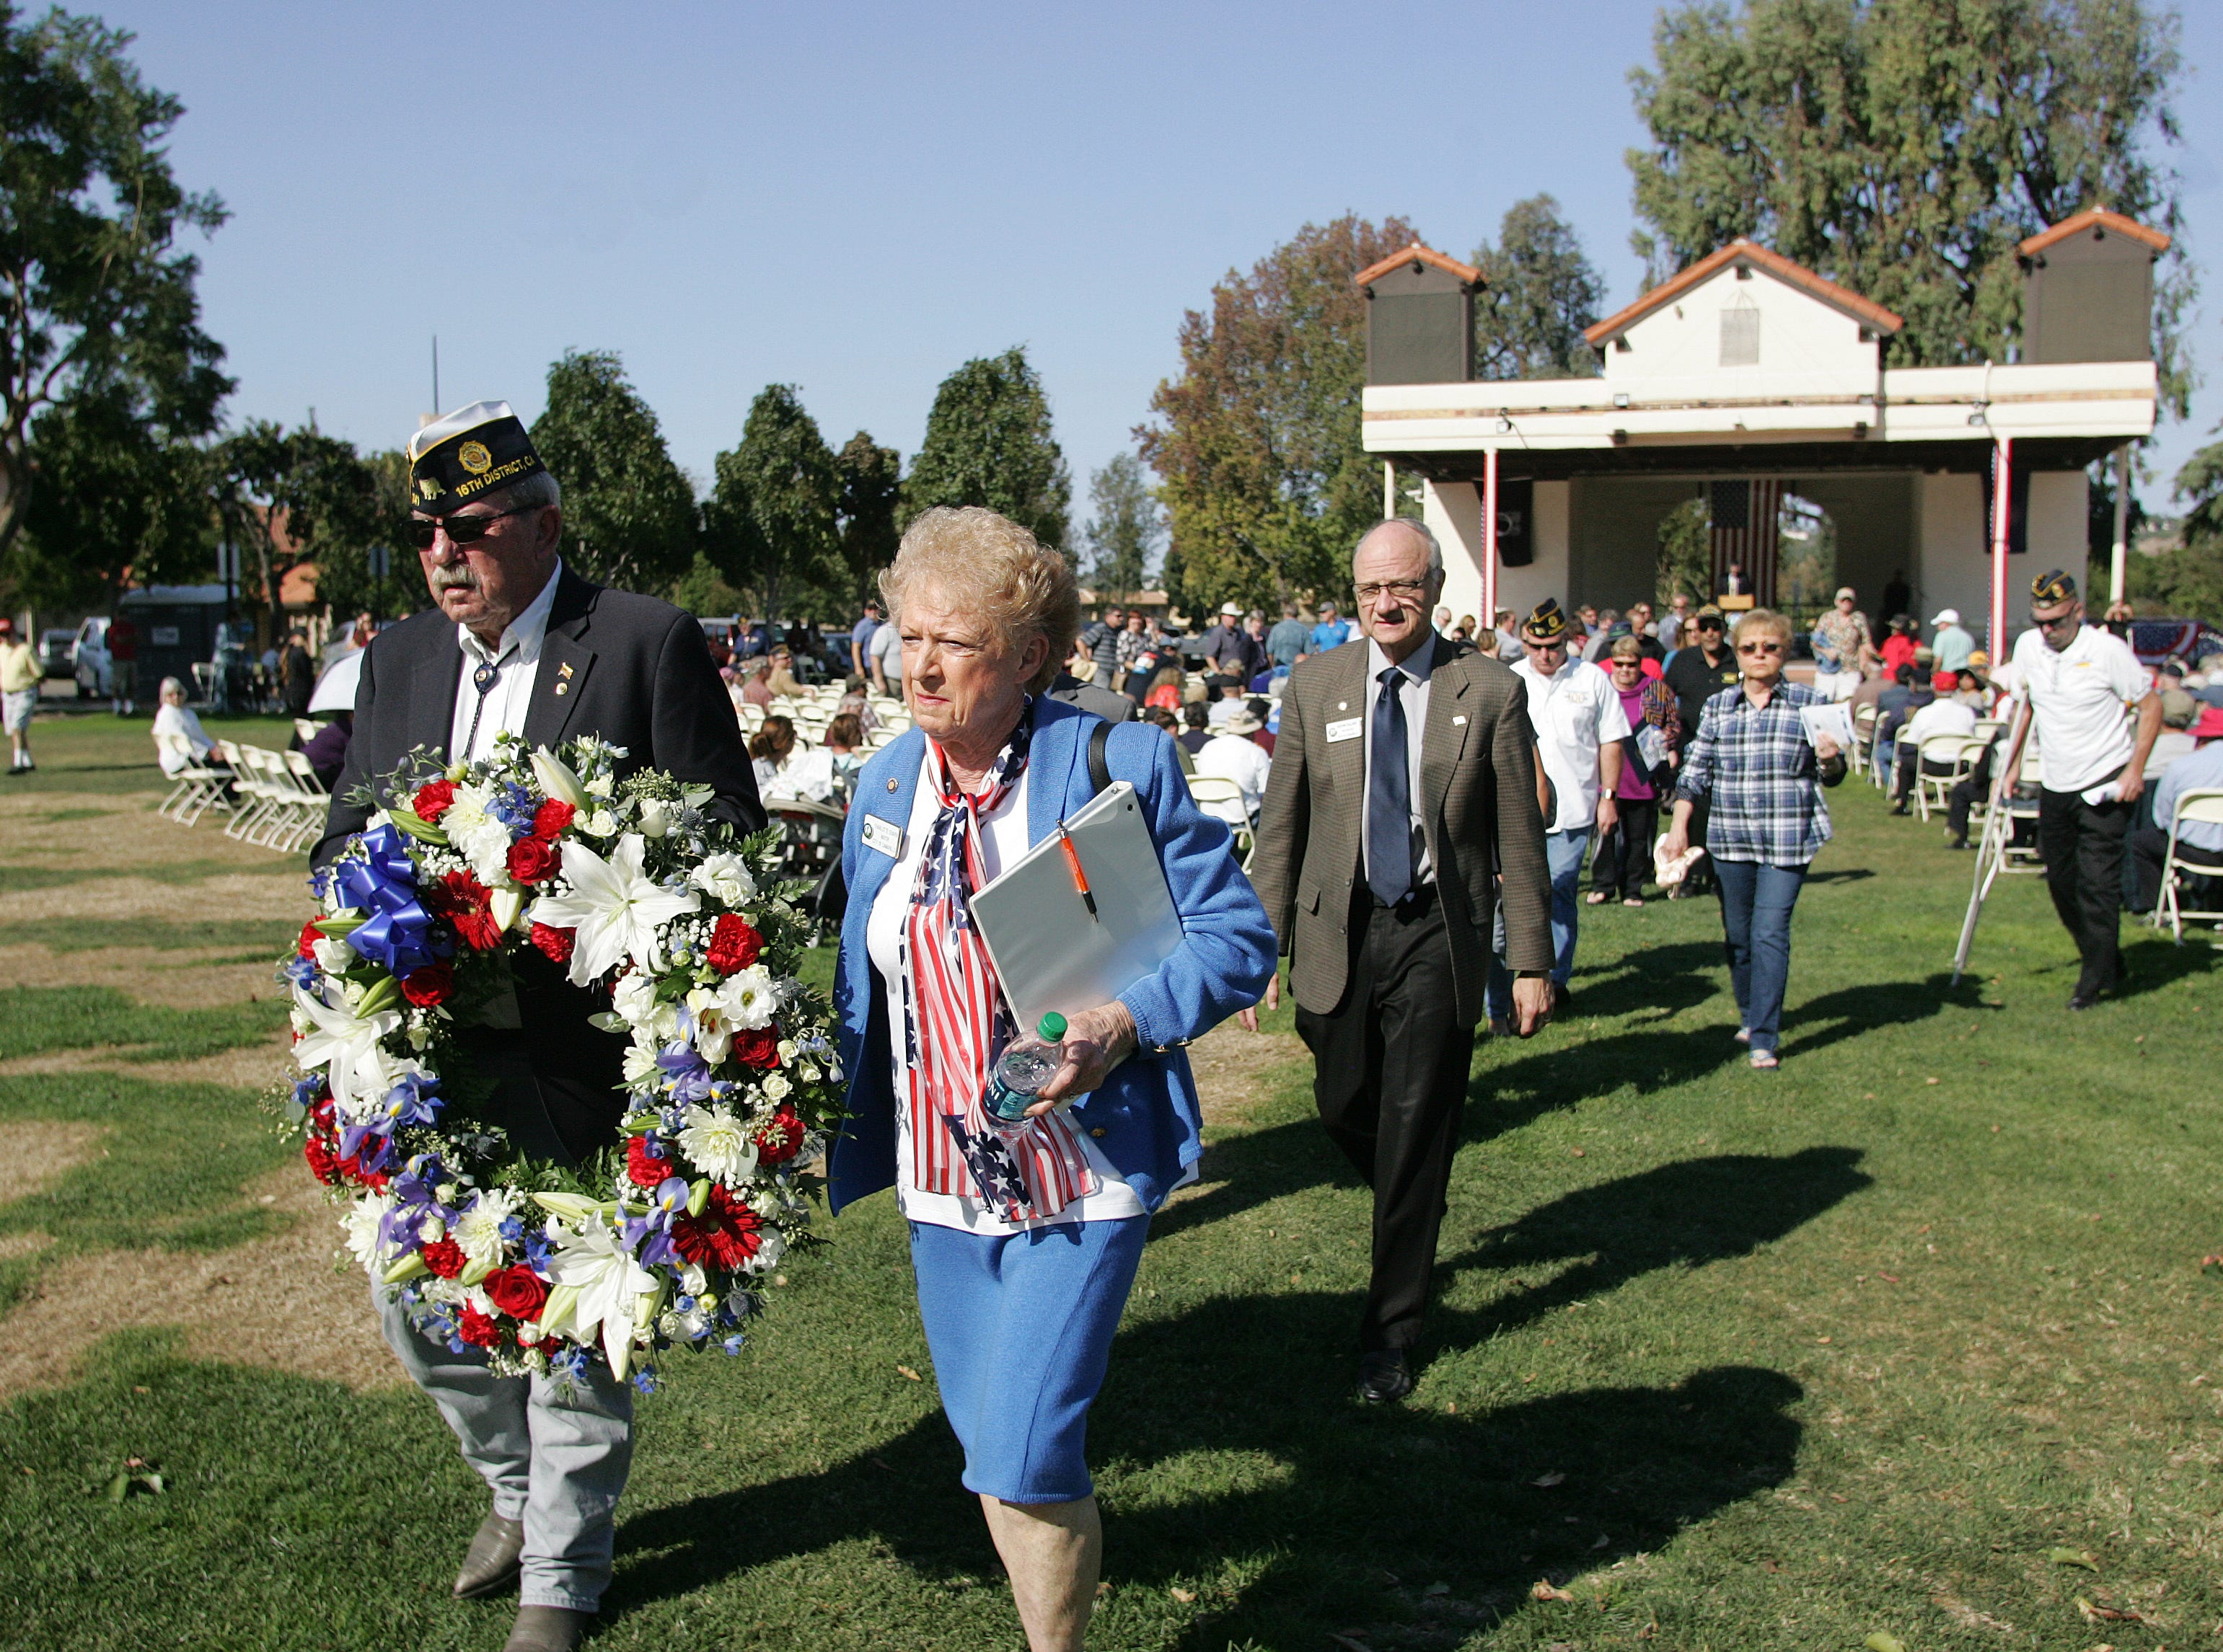 A wreath is carried to the new Veterans Memorial Monument by veteran Dan Crow, who's on the executive committee of American Legion Post 741, and Camarillo Mayor Charlotte Craven on Saturday. The City of Camarillo and American Legion Post 741 hosted a Veterans Memorial Monument dedication ceremony at Constitution Park in Camarillo.